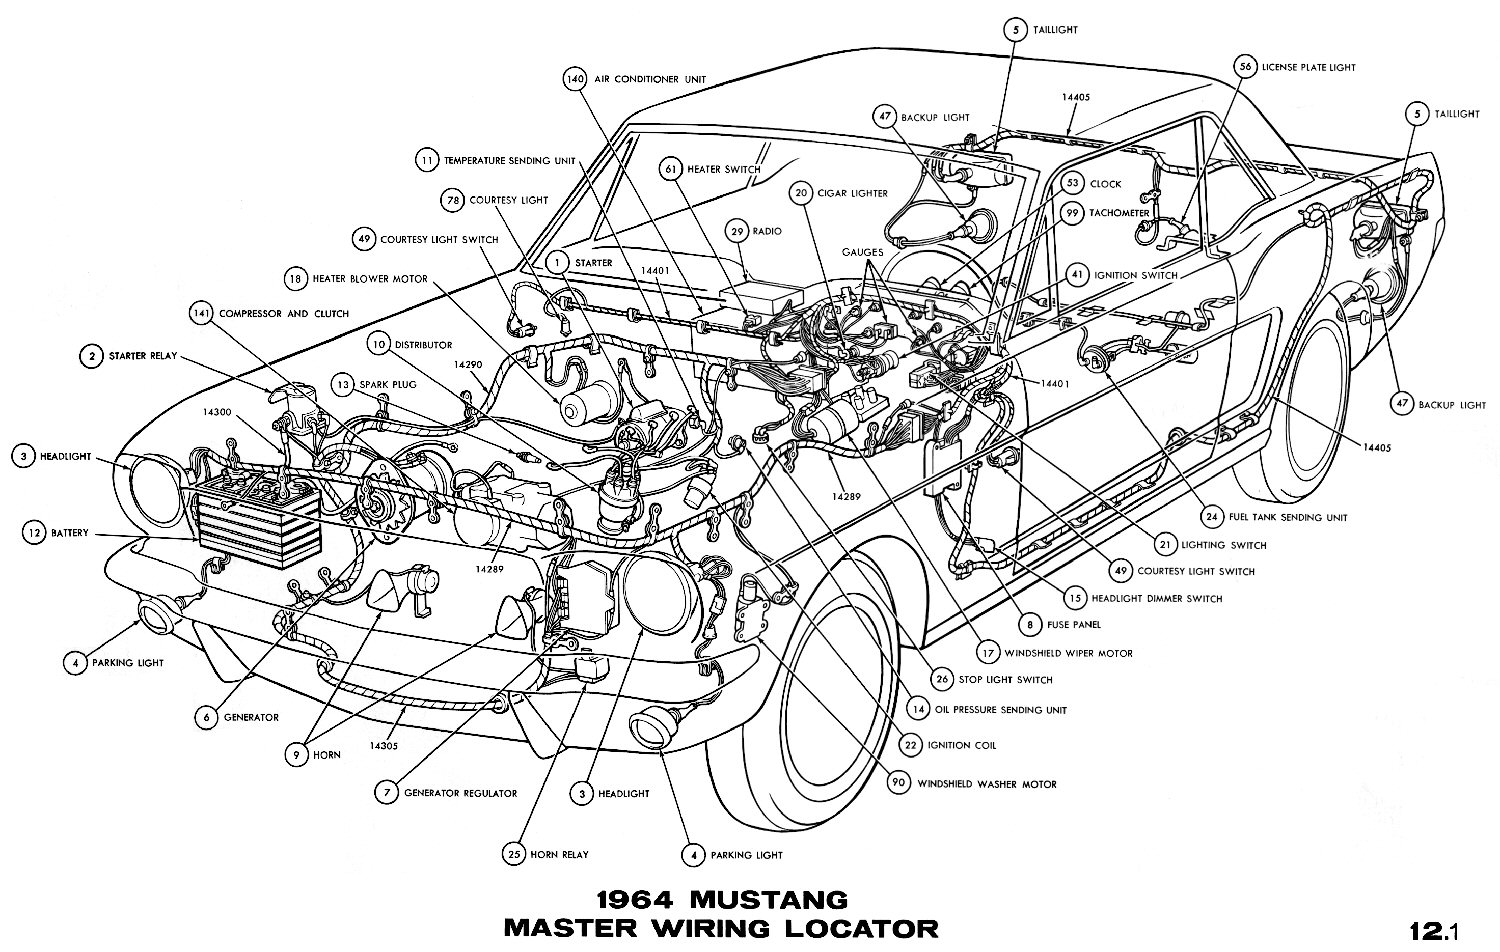 Diagram Mustang Wiring Harness Diagram Full Version